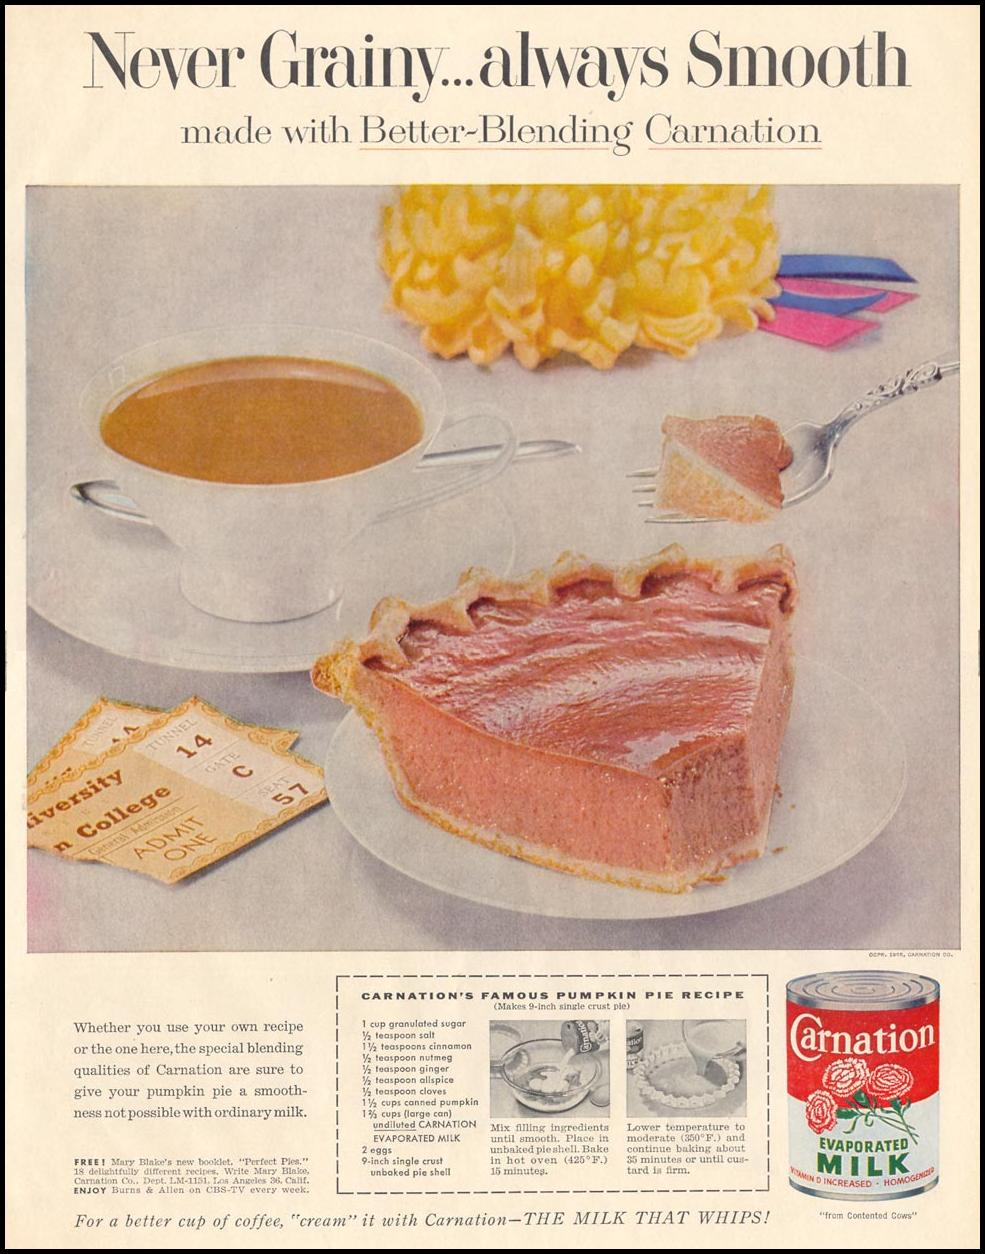 CARNATION EVAPORATED MILK LIFE 11/14/1955 p. 111